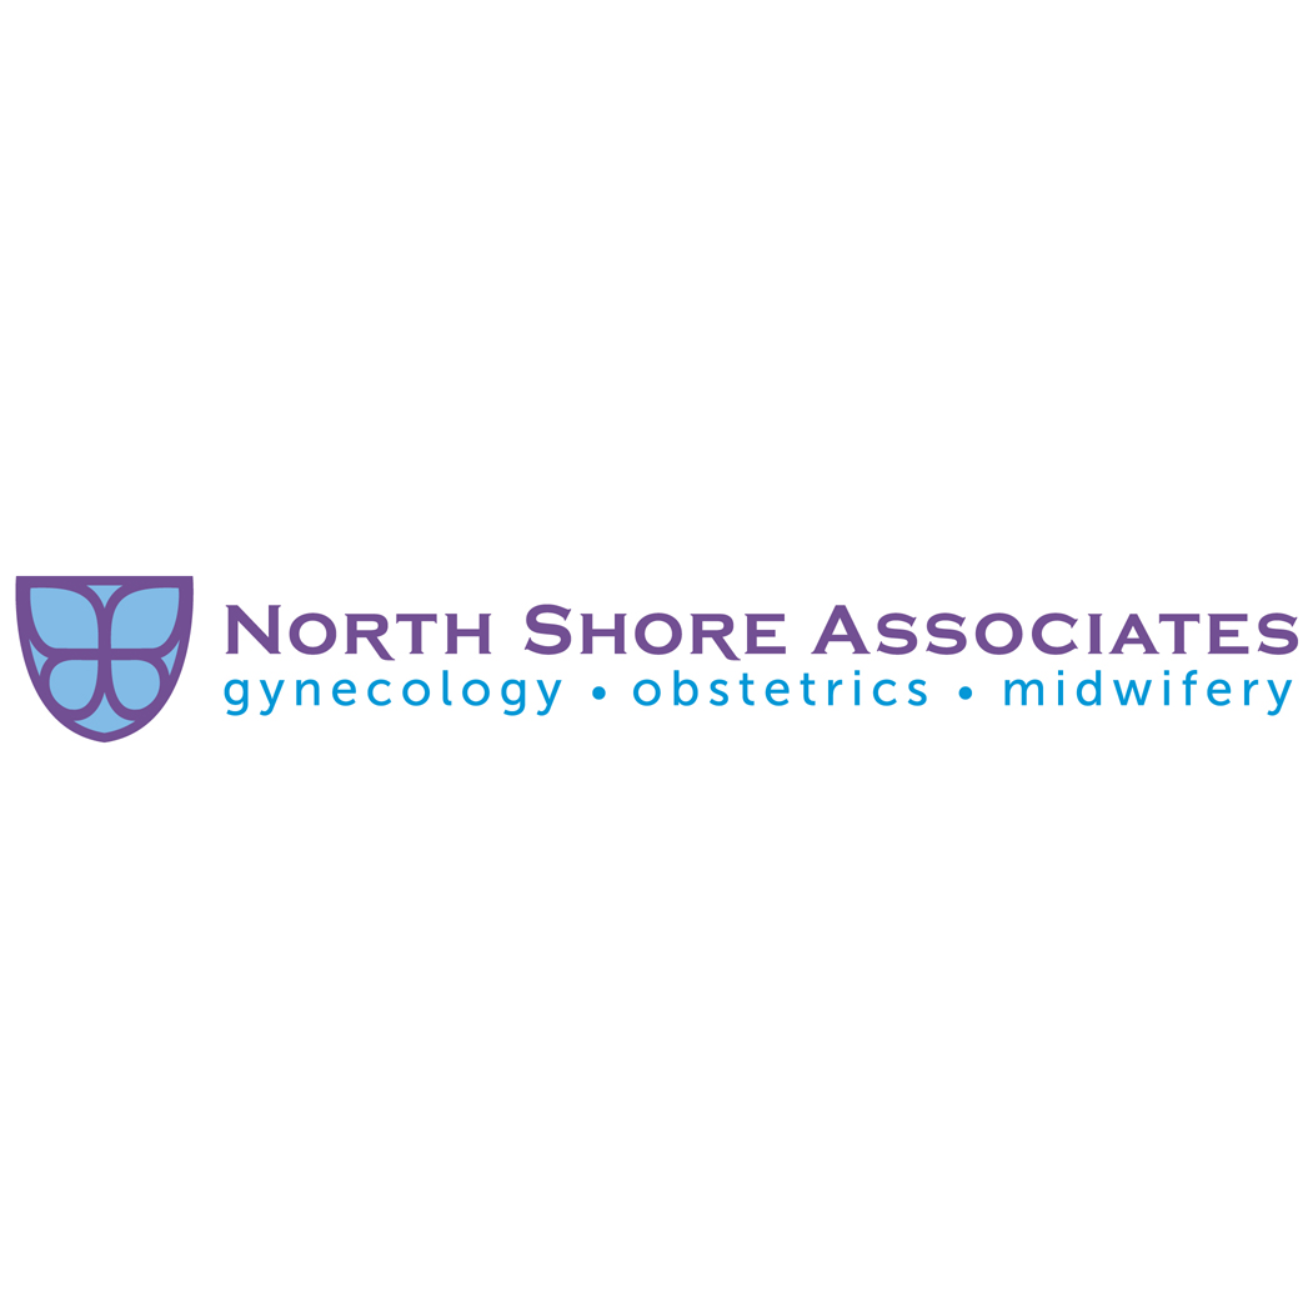 North Shore Associates in Gynecology and Obstetrics - Glenview, IL - Obstetricians & Gynecologists